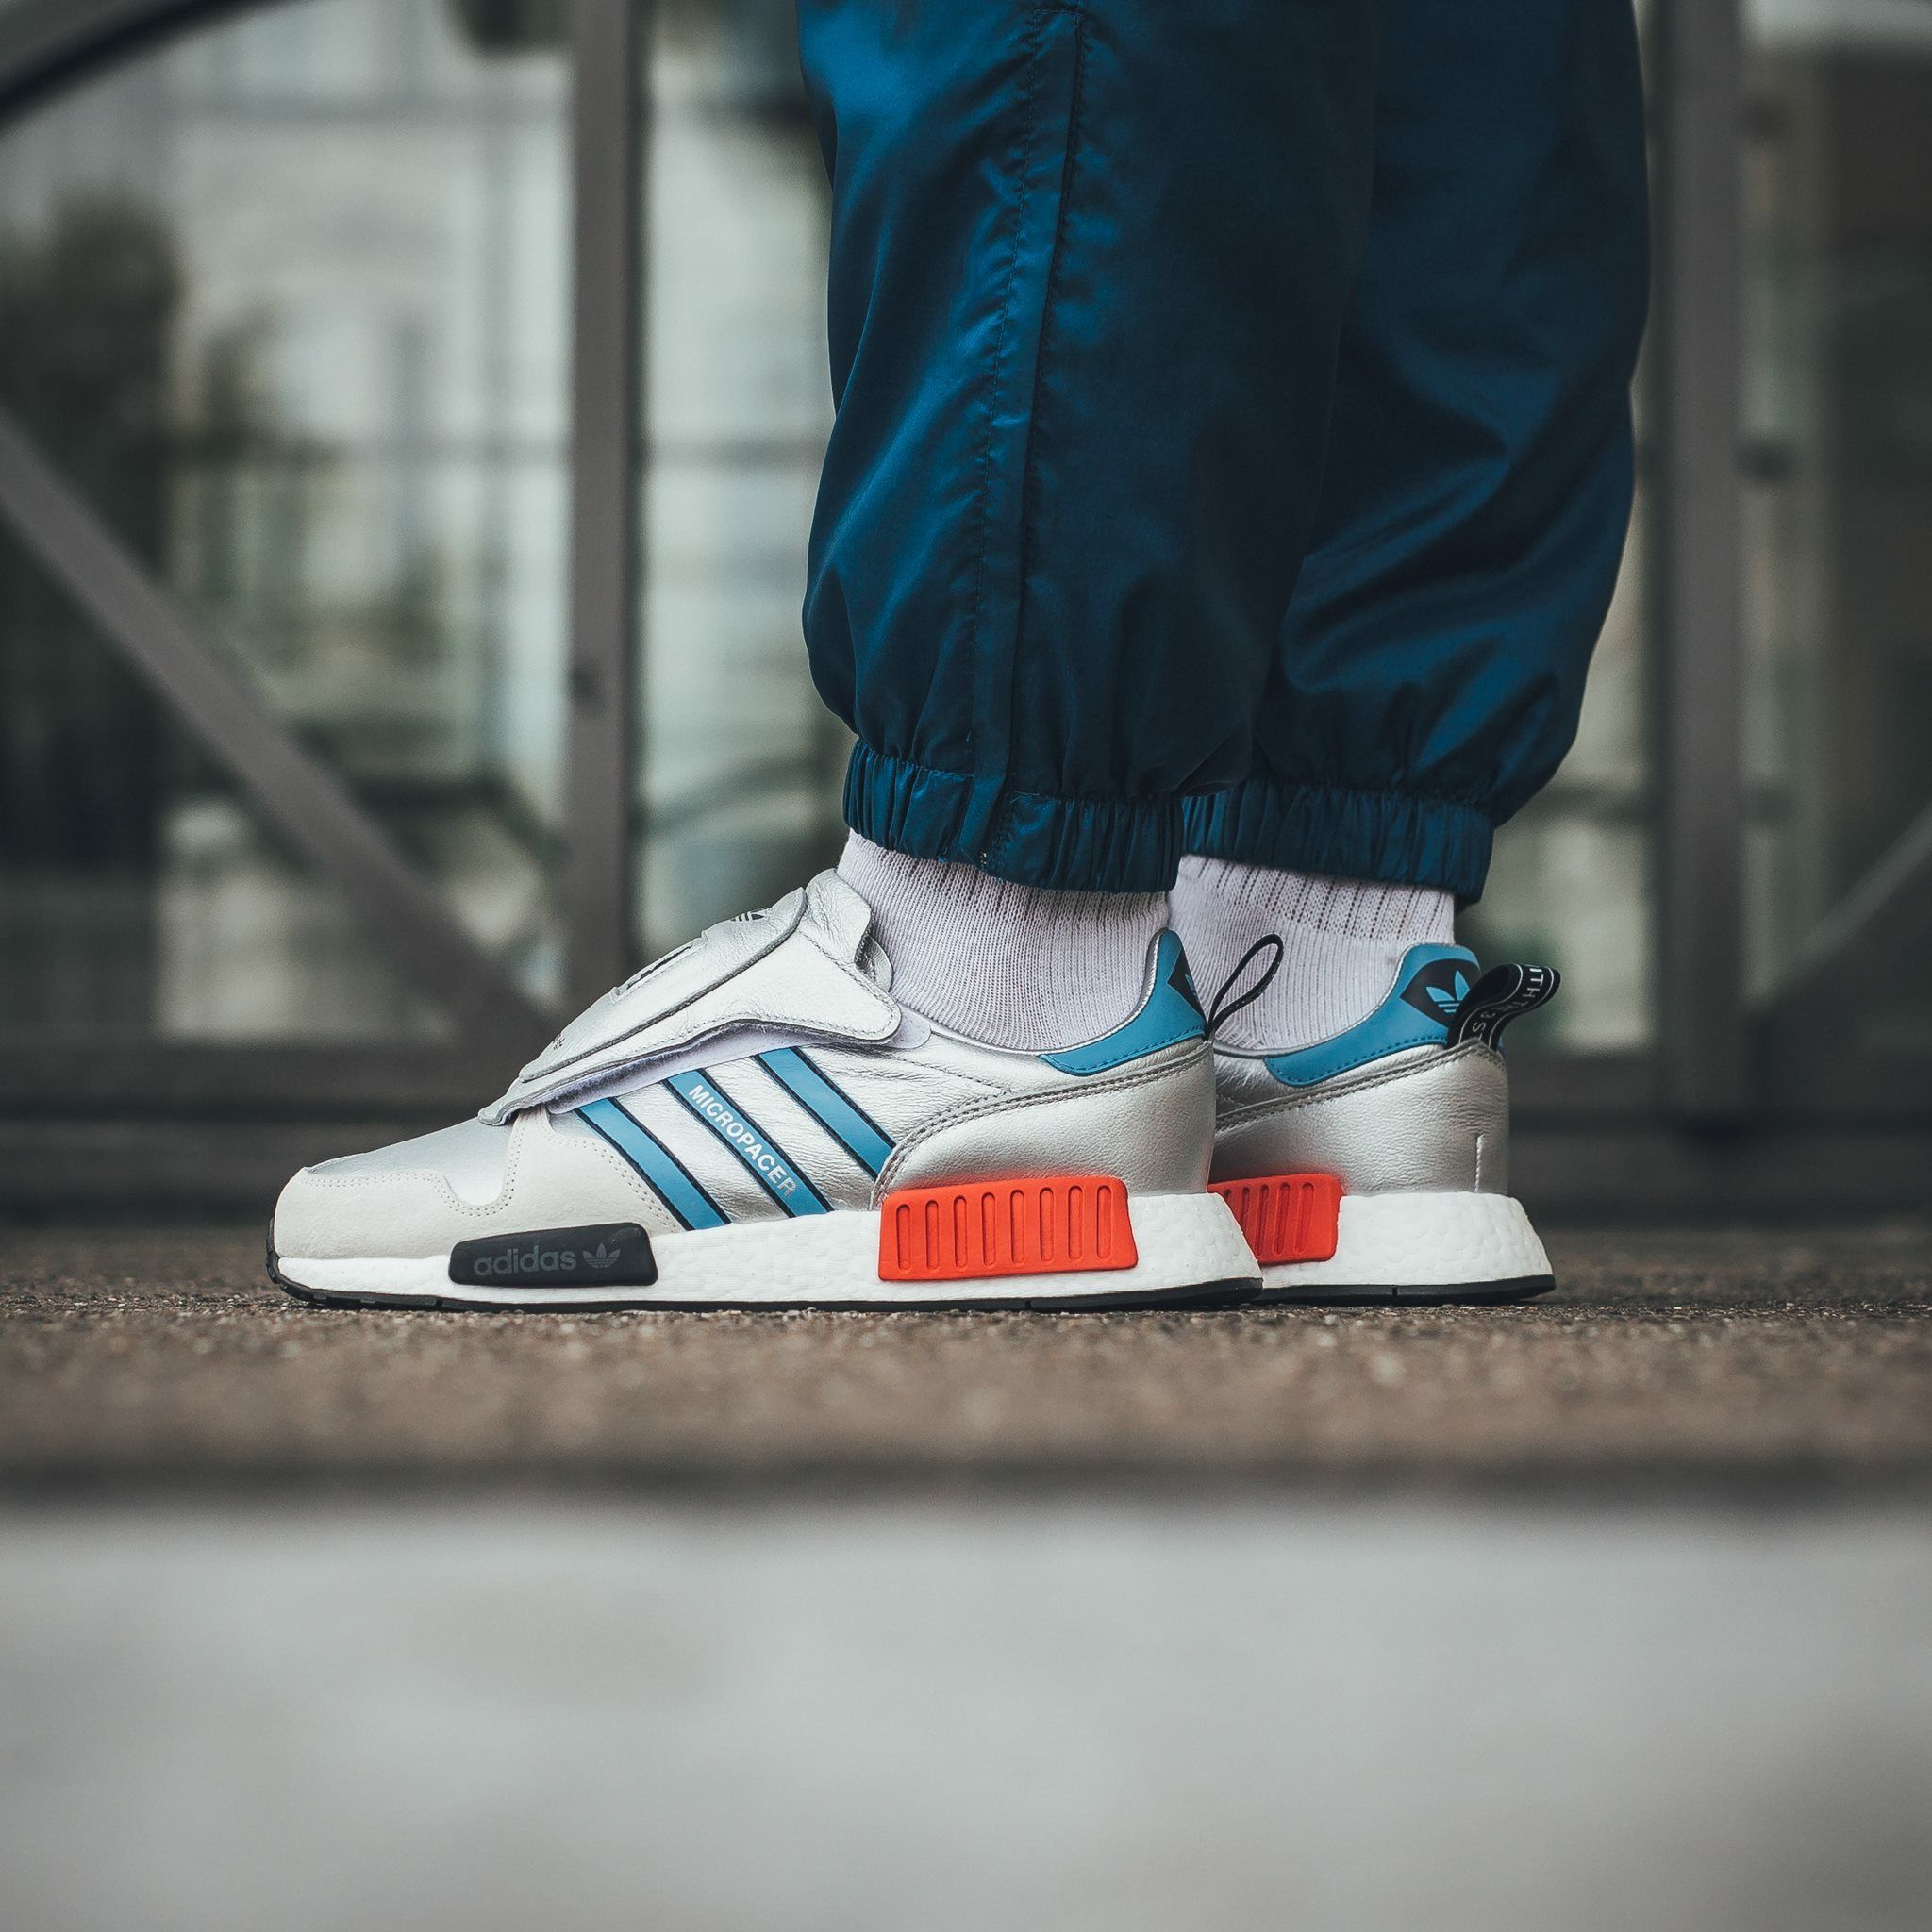 adidas Originals Micropacer NMD | Adidas sneakers, Sneakers